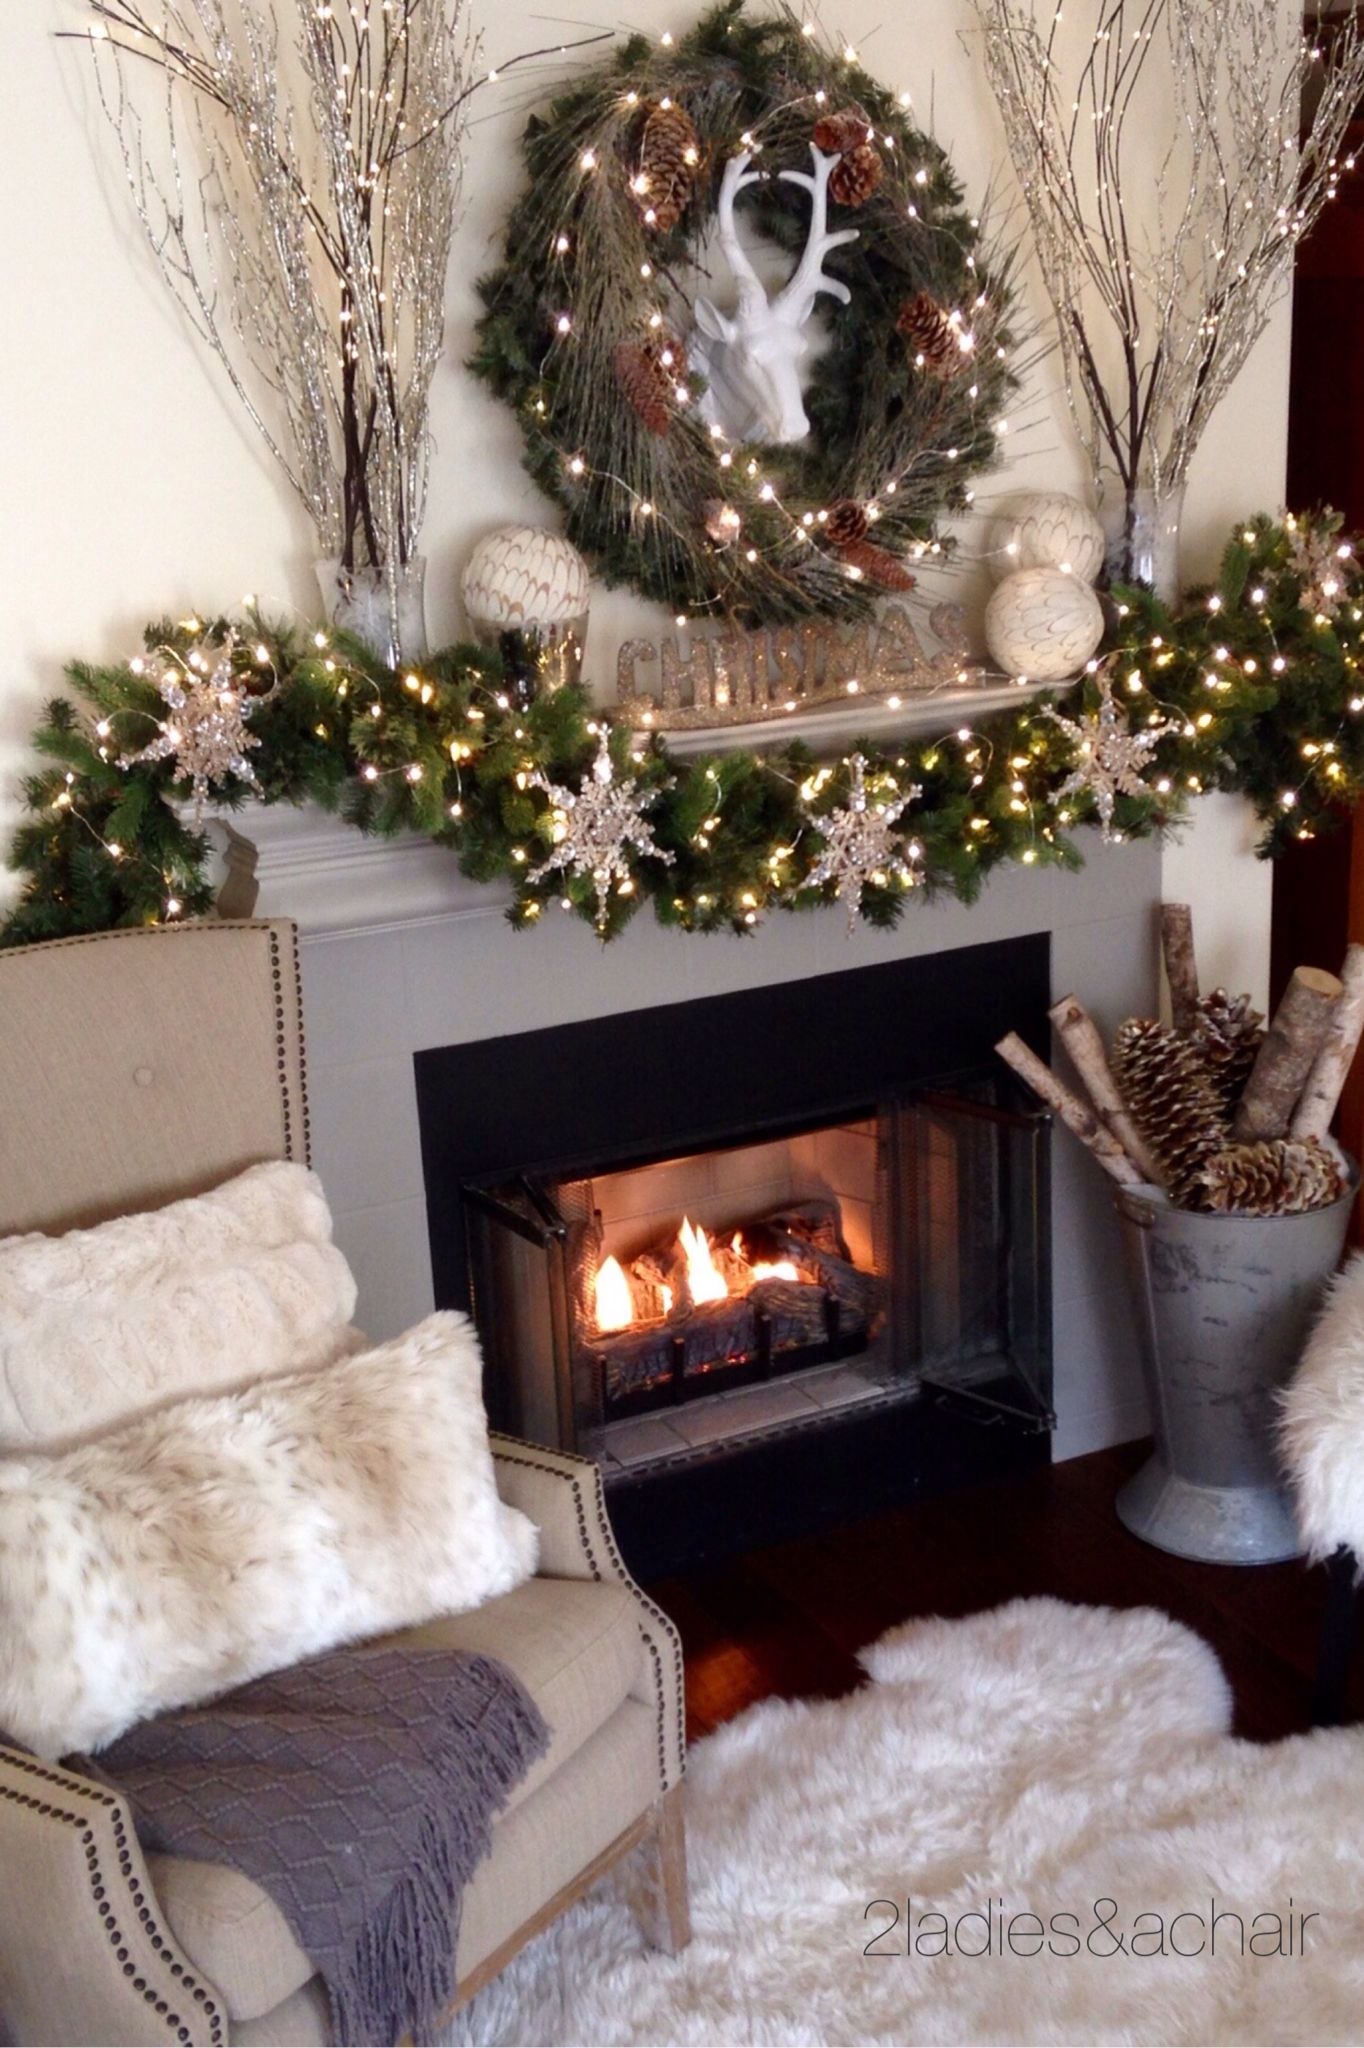 2 Ladies A Chair Christmas Mantel Decorations Christmas Mantle Decor Christmas Decor Diy